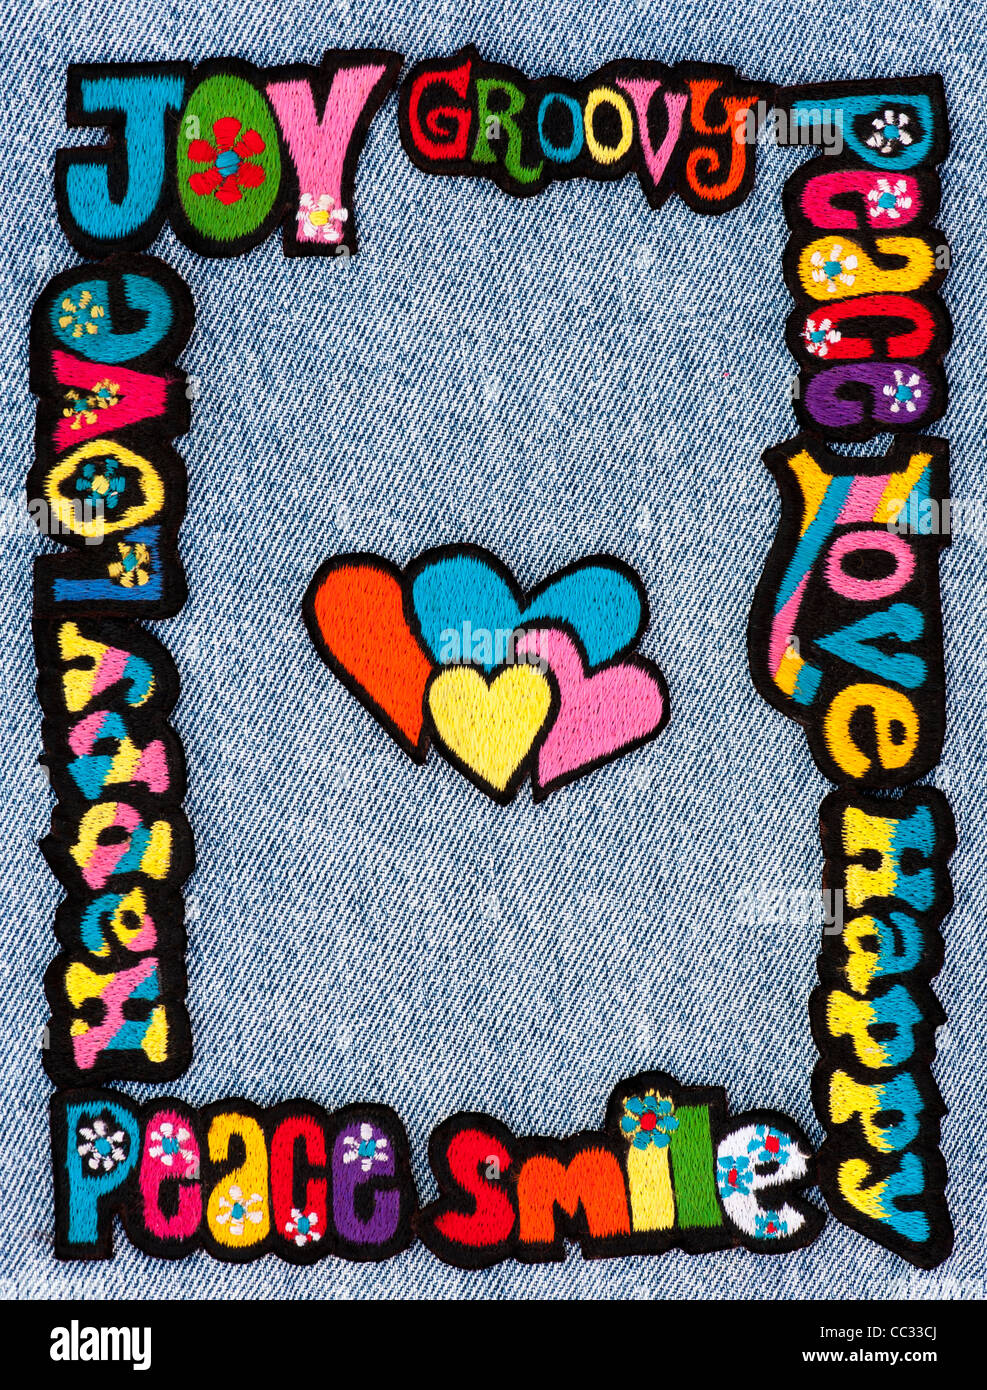 Embroidery iron on patches of Multicoloured Love, Peace, Happy words with hearts on a denim jean background - Stock Image